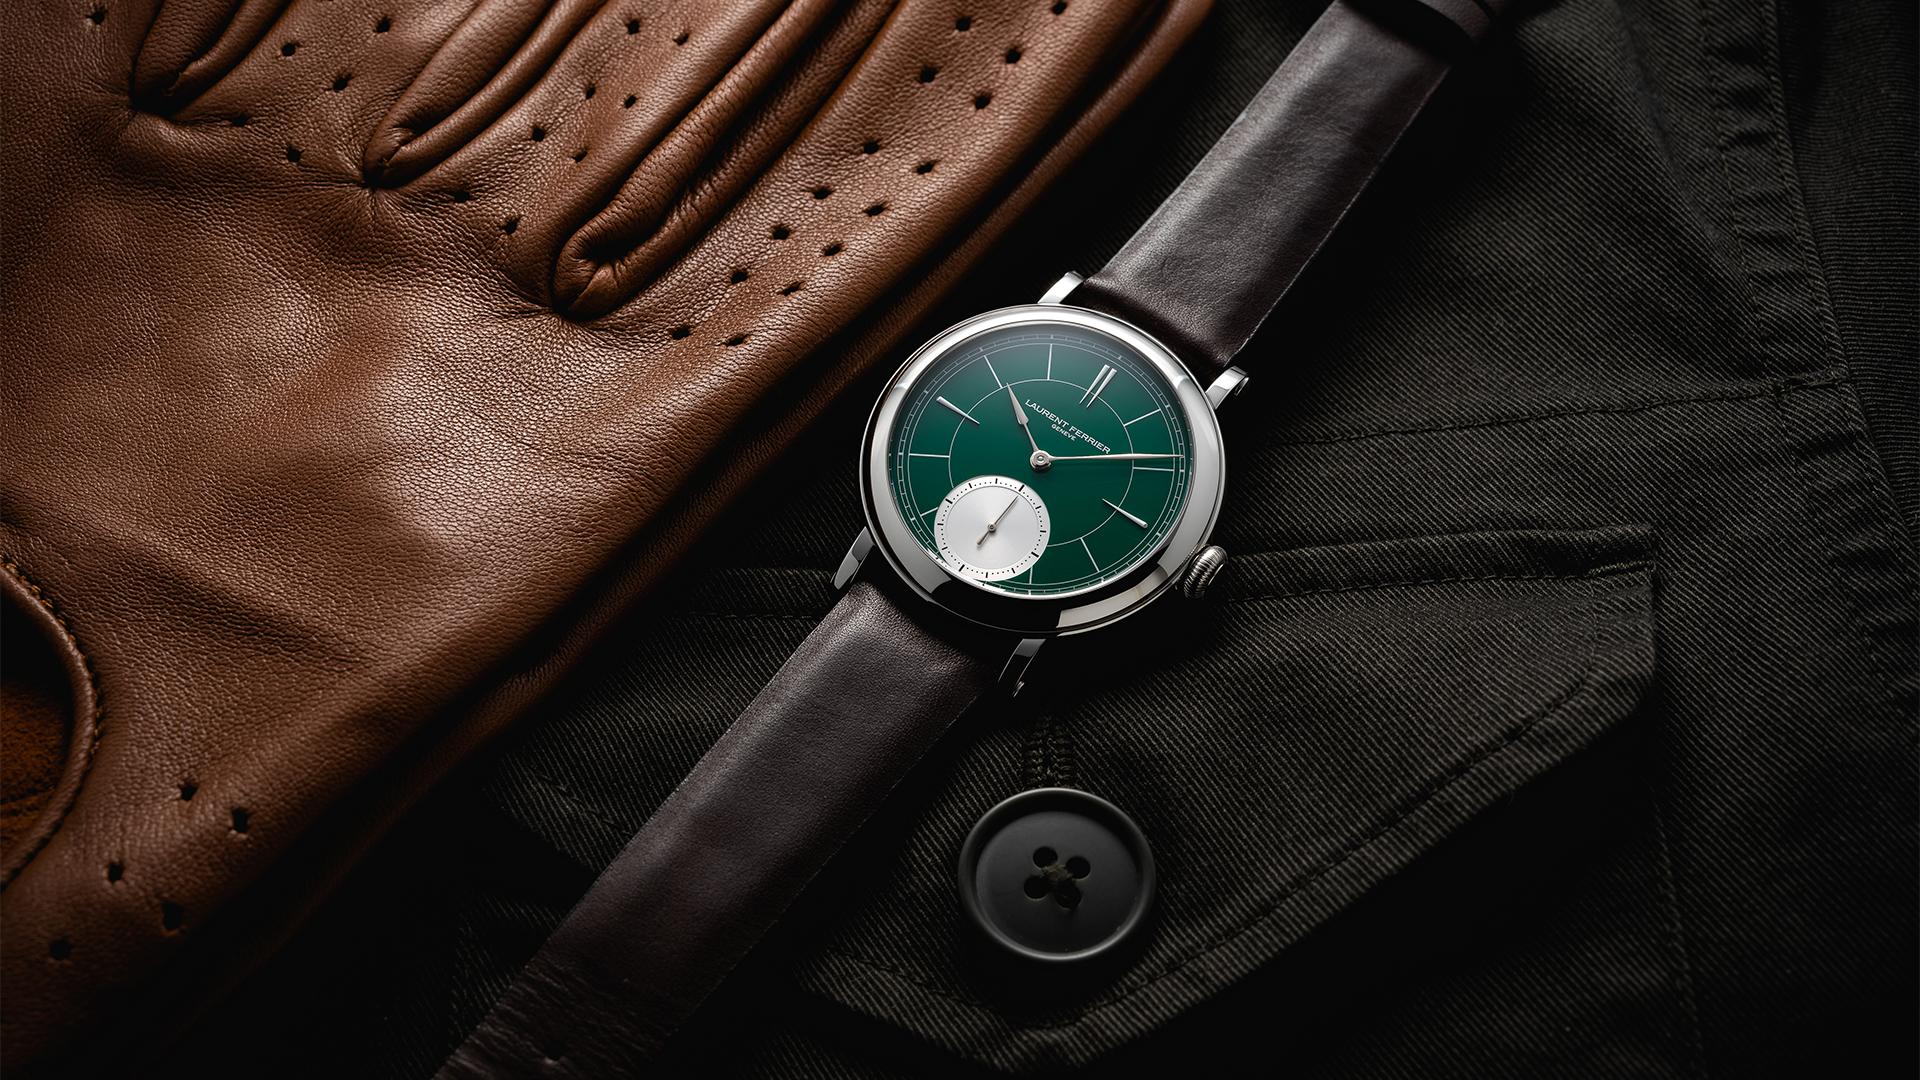 Laurent Ferrier Galet Micro-Rotor 'Montre Ecole' British Racing Green, best car-inspired watches